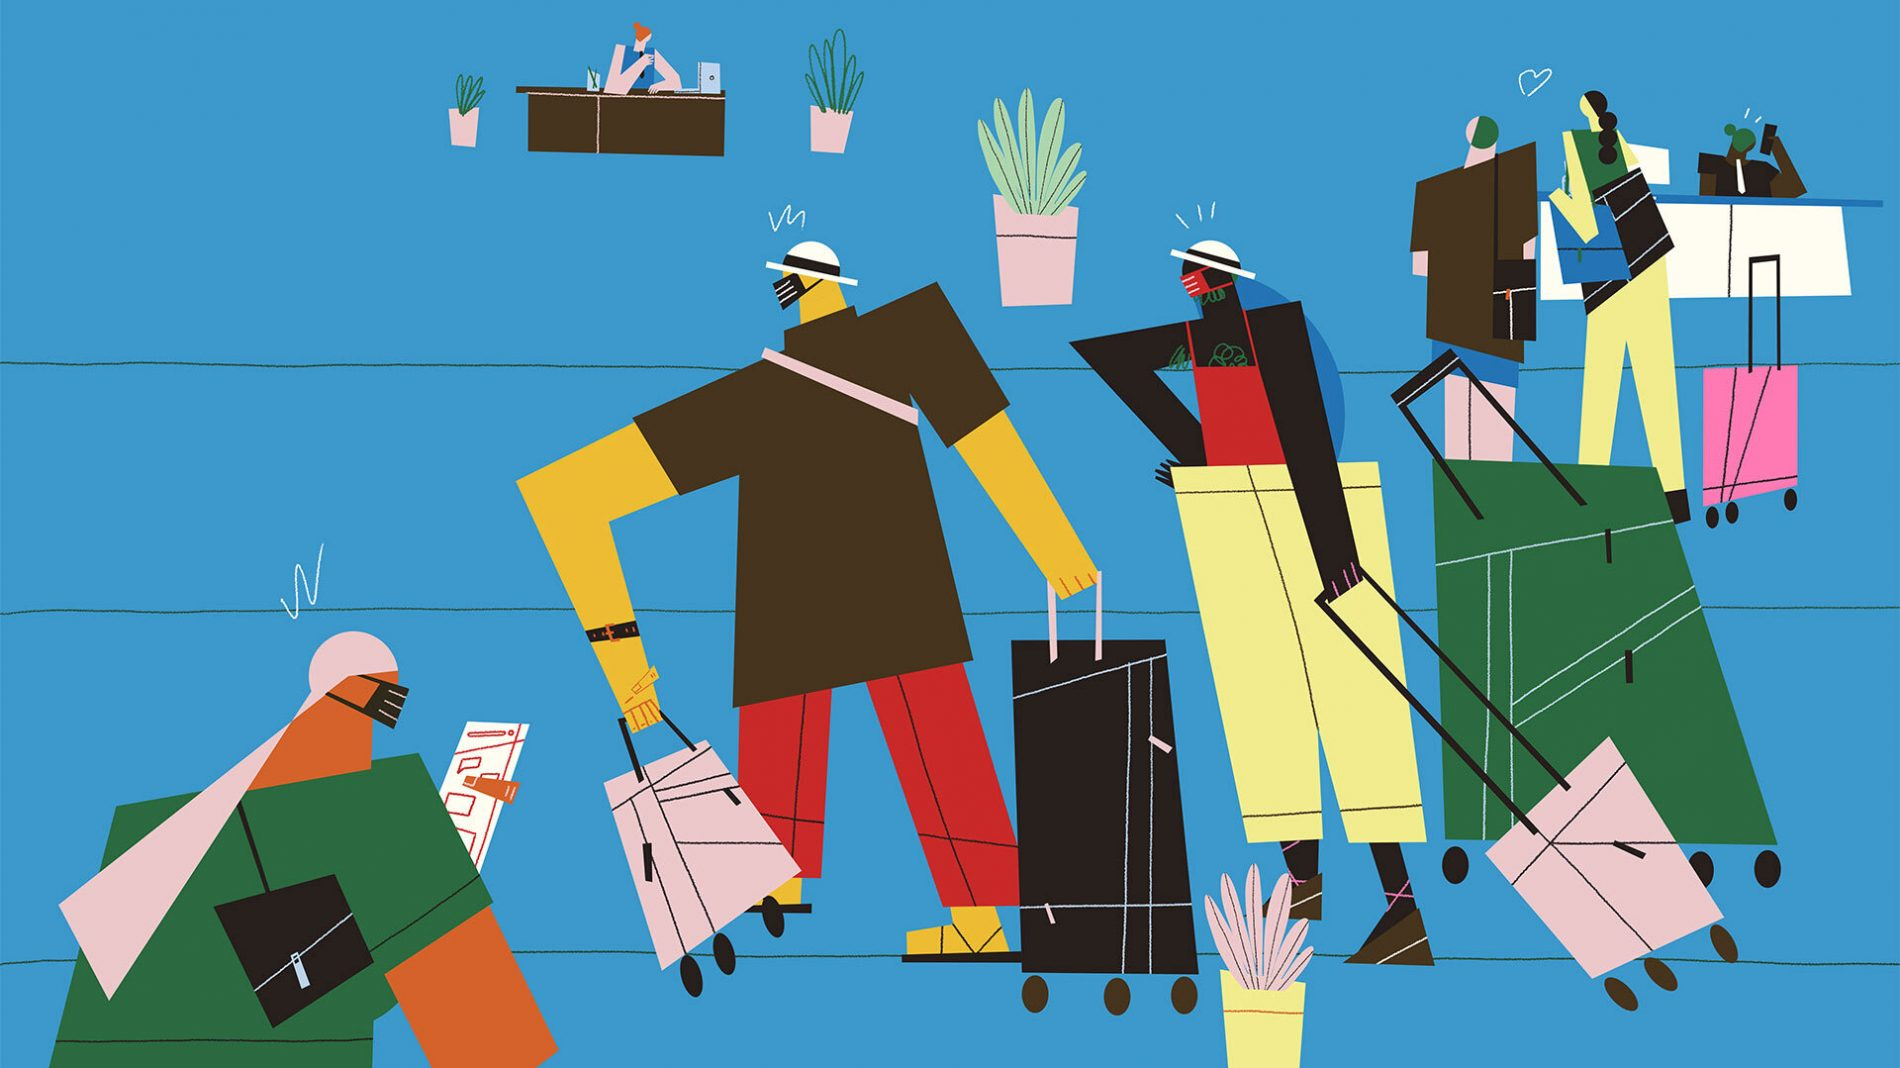 Illustration of people wearing masks waiting in an airport with suitcases